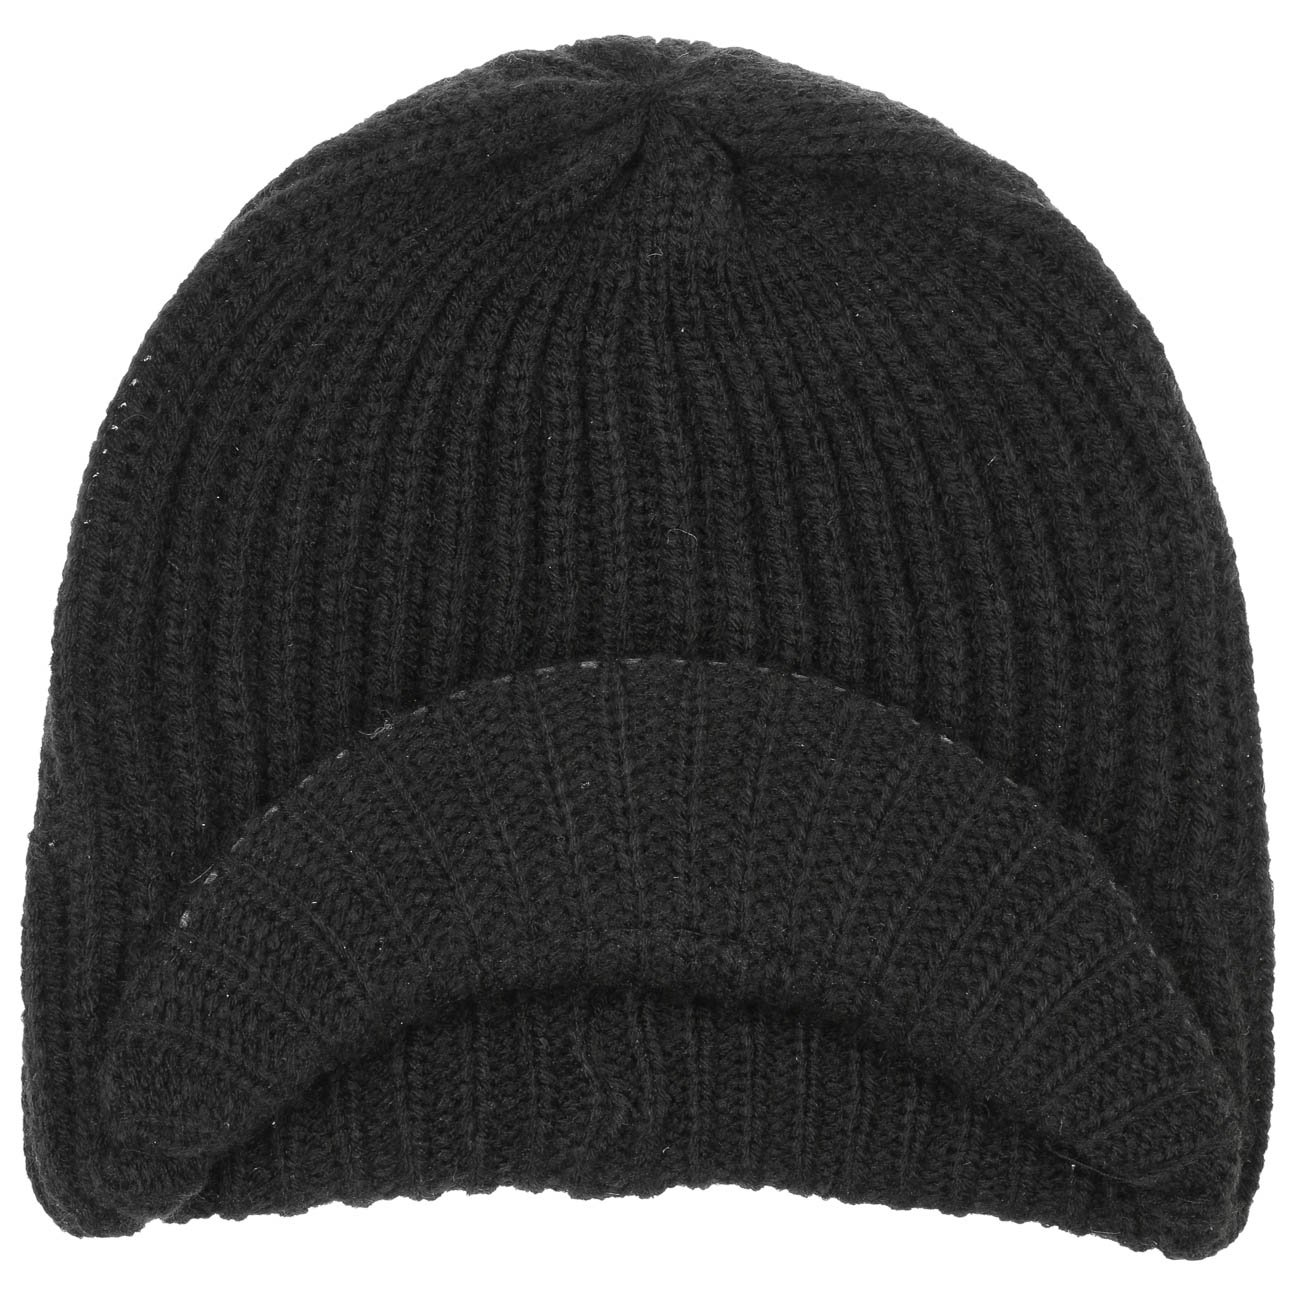 a523b712917f Chillouts Bonnet pour Enfant Jack Styler en Tricot l hiver (Taille Unique -  Noir)  Amazon.fr  Vêtements et accessoires